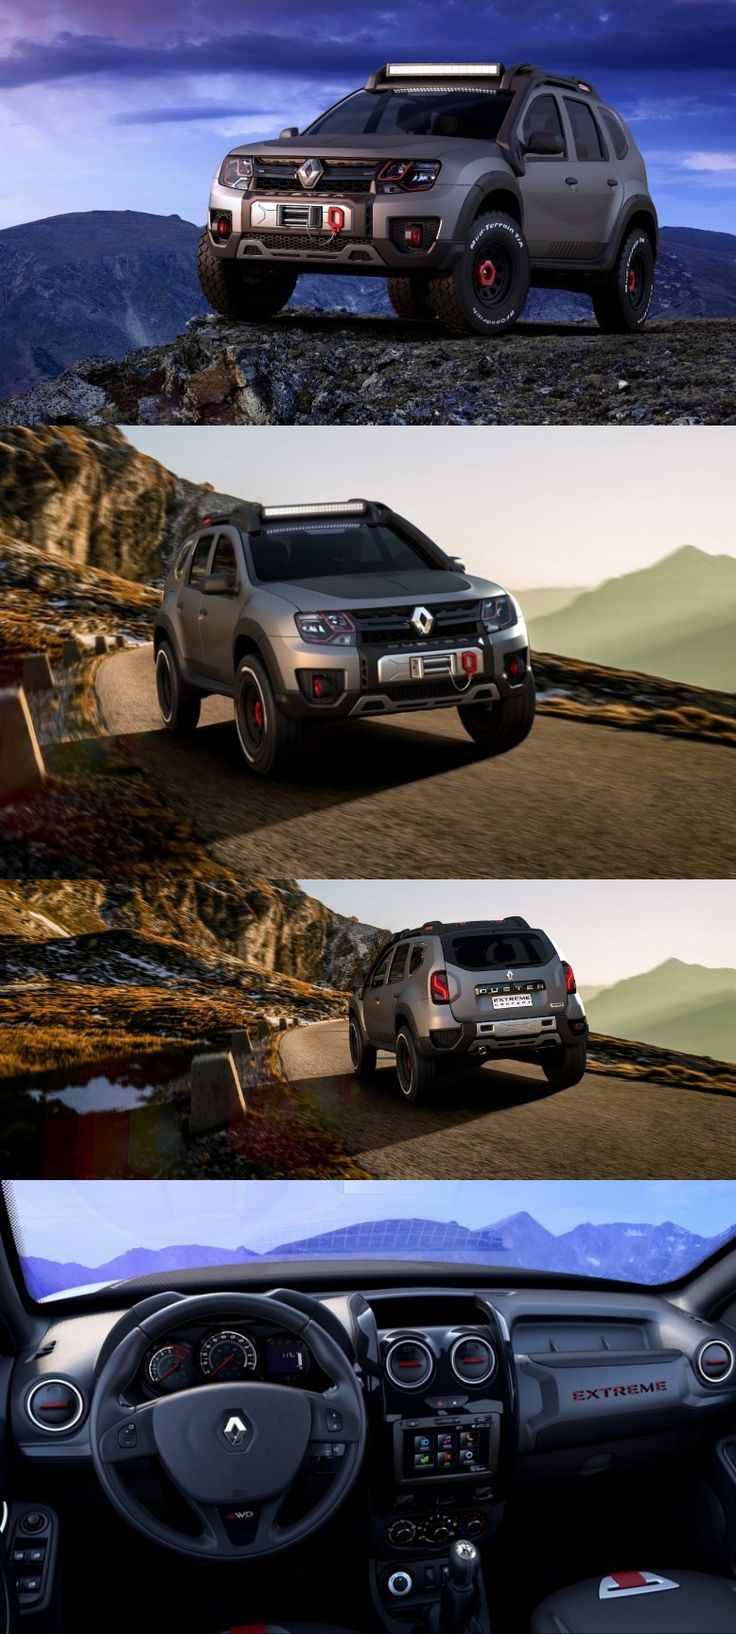 Sao Paulo Auto Show 2016: Renault Duster Extreme Concept Displayed